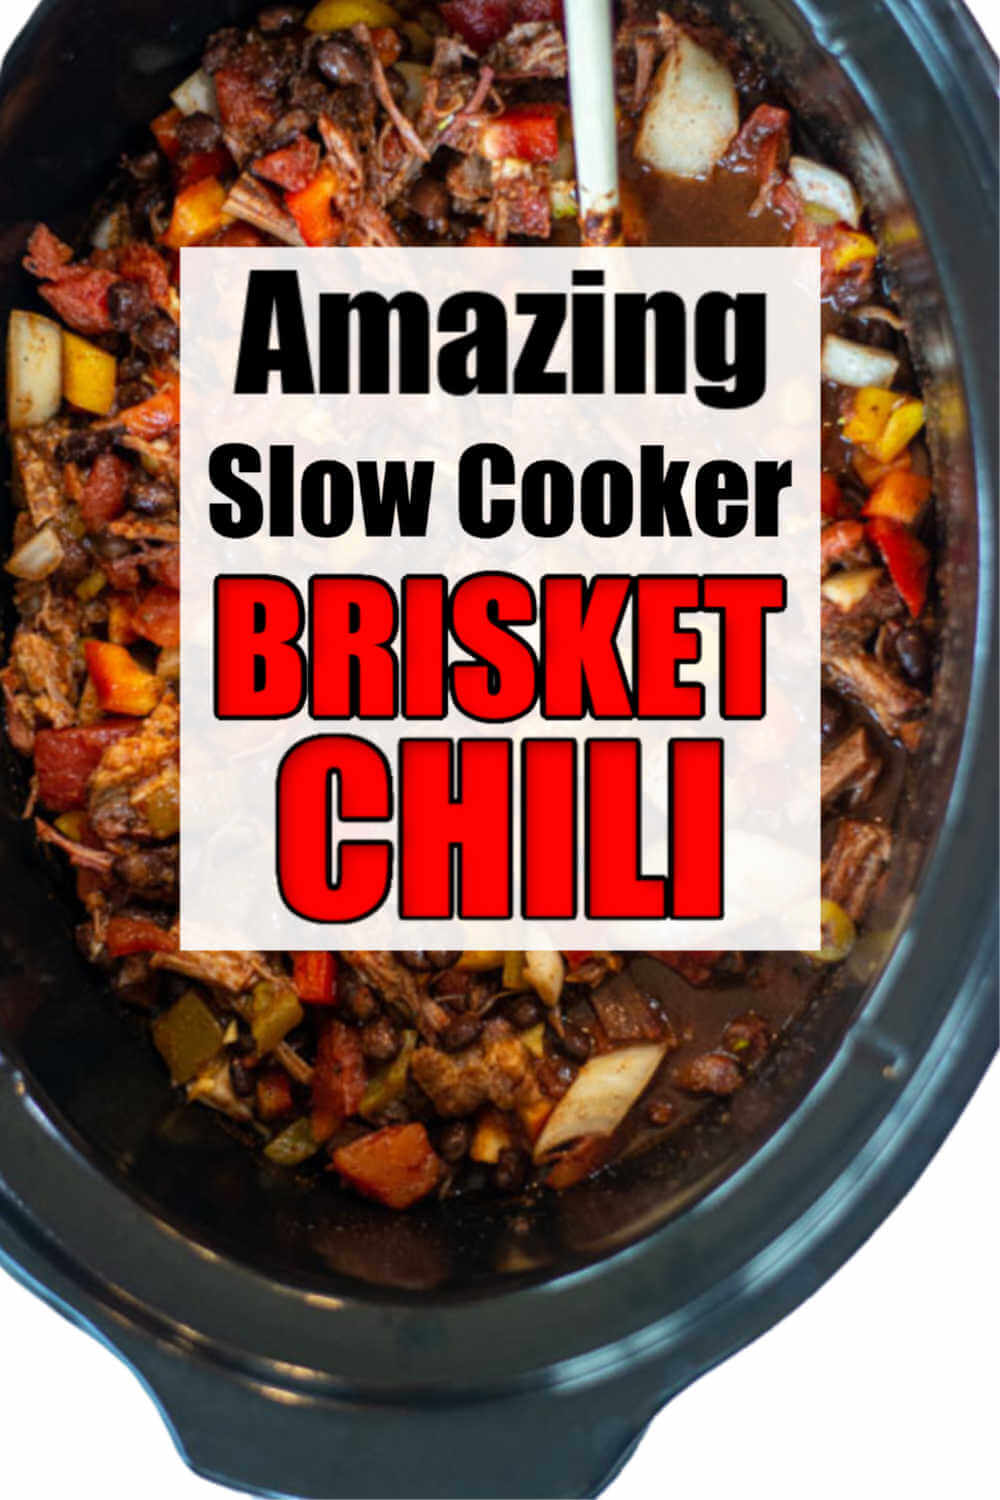 Brisket Chili Recipe in the Slow Cooker